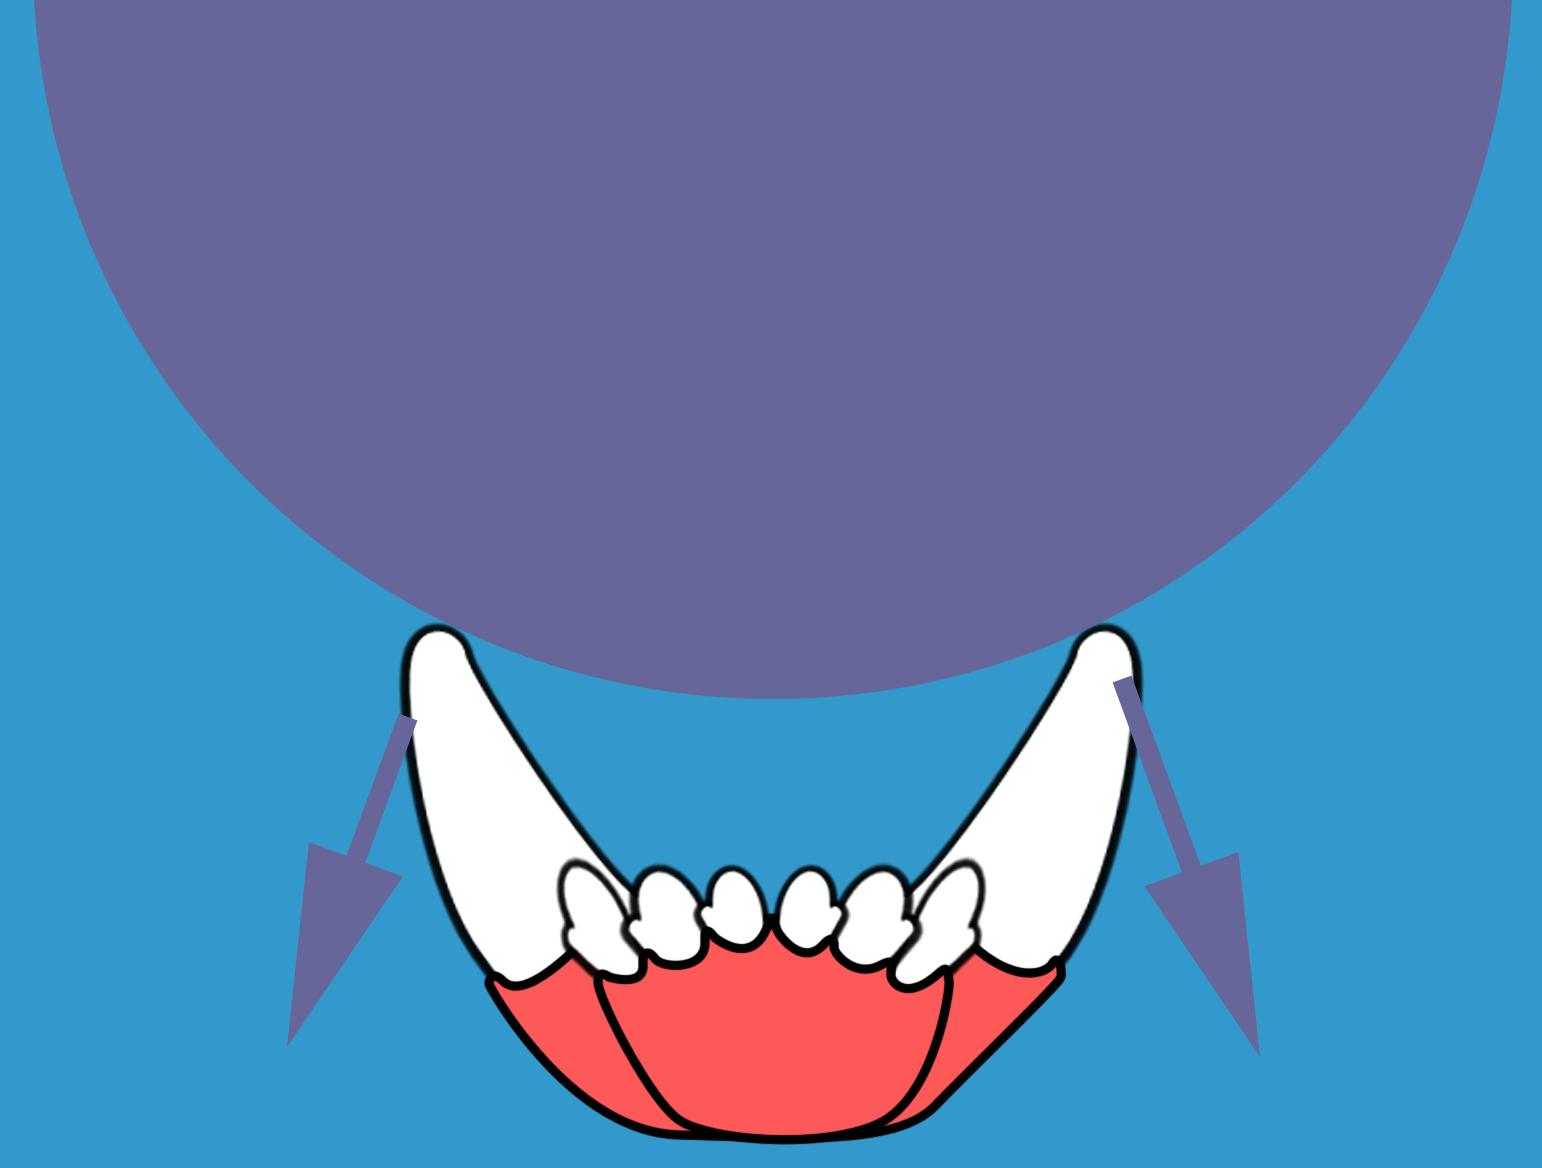 This ball is too large to effectively put outward force on the canine teeth.